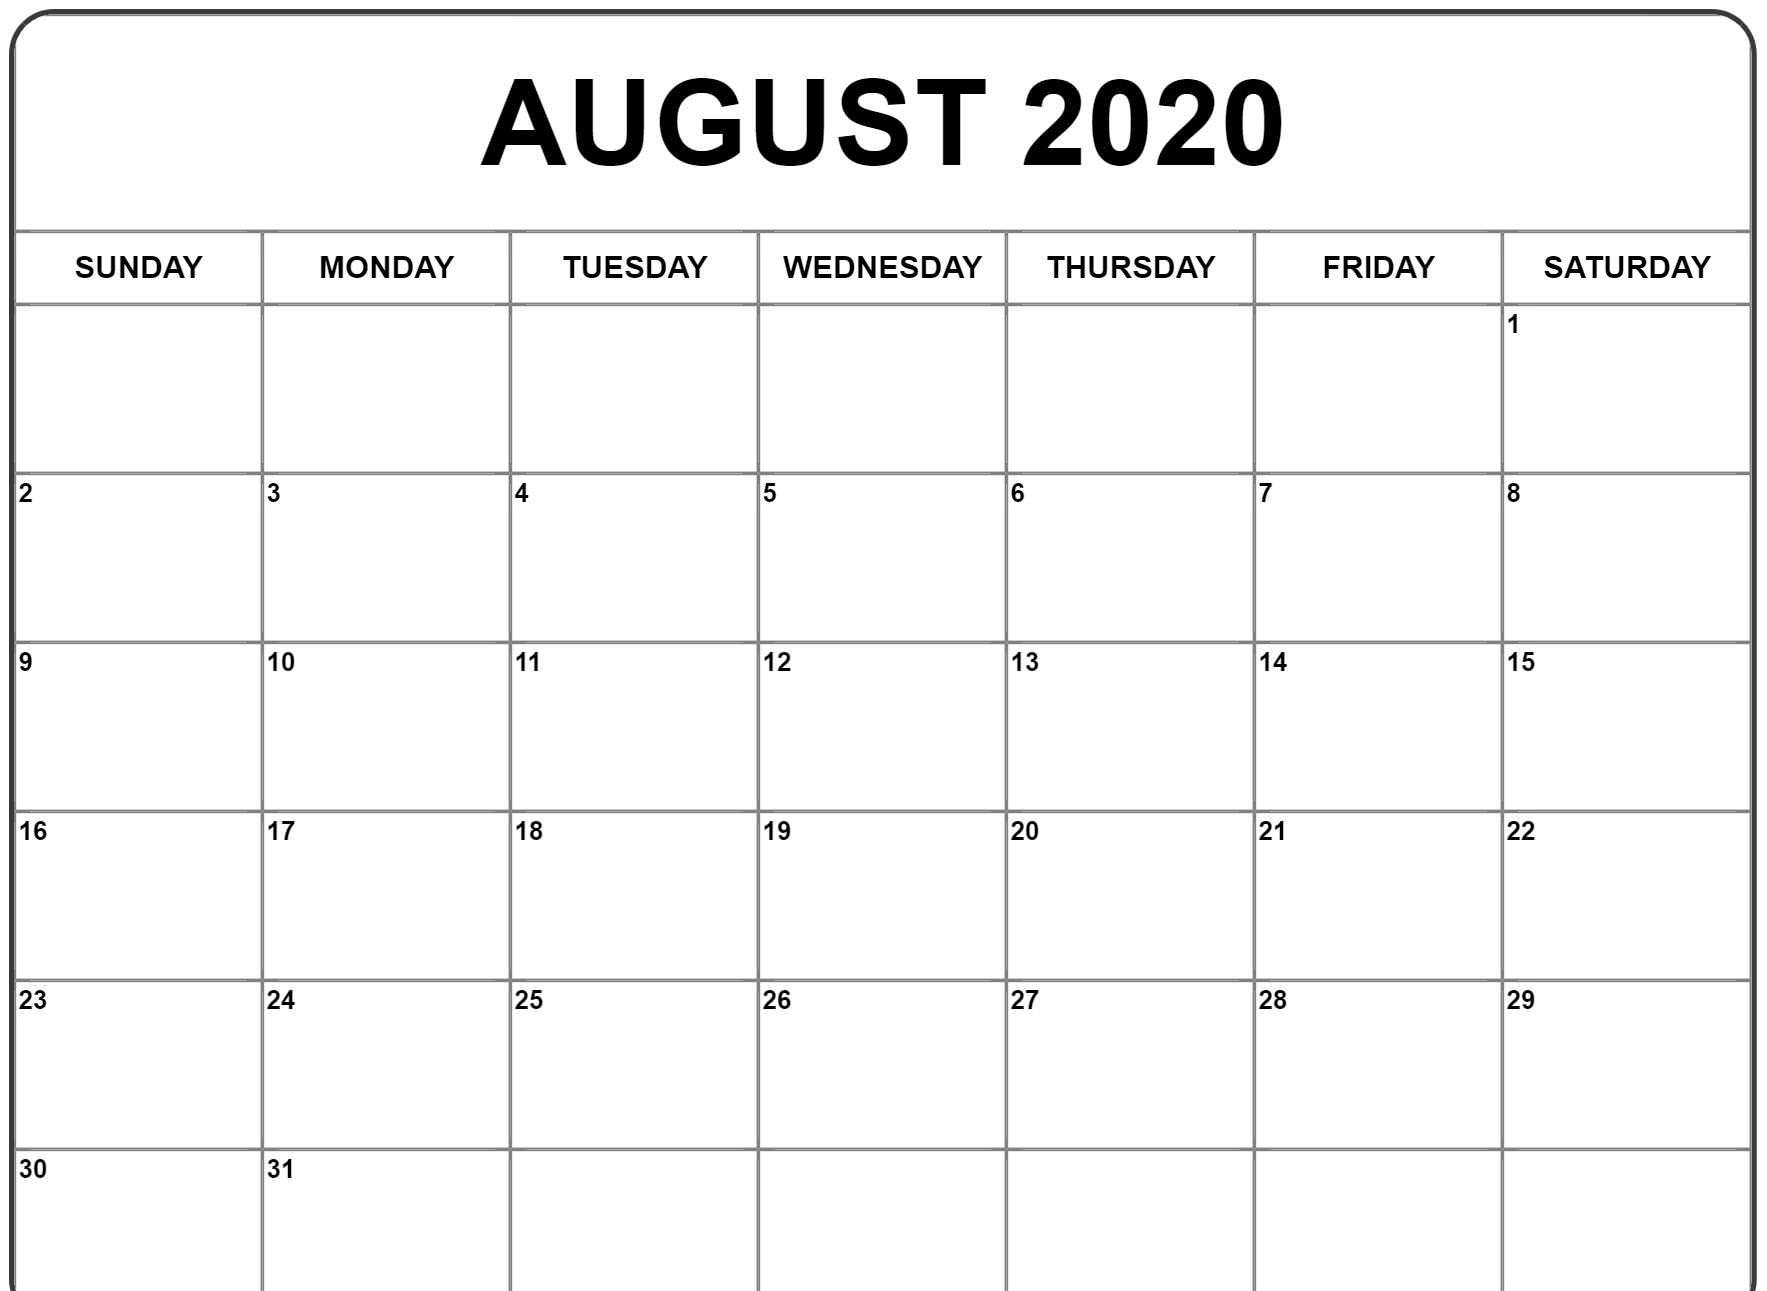 August 2020 Calendar Pdf, Word, Excel Printable Template